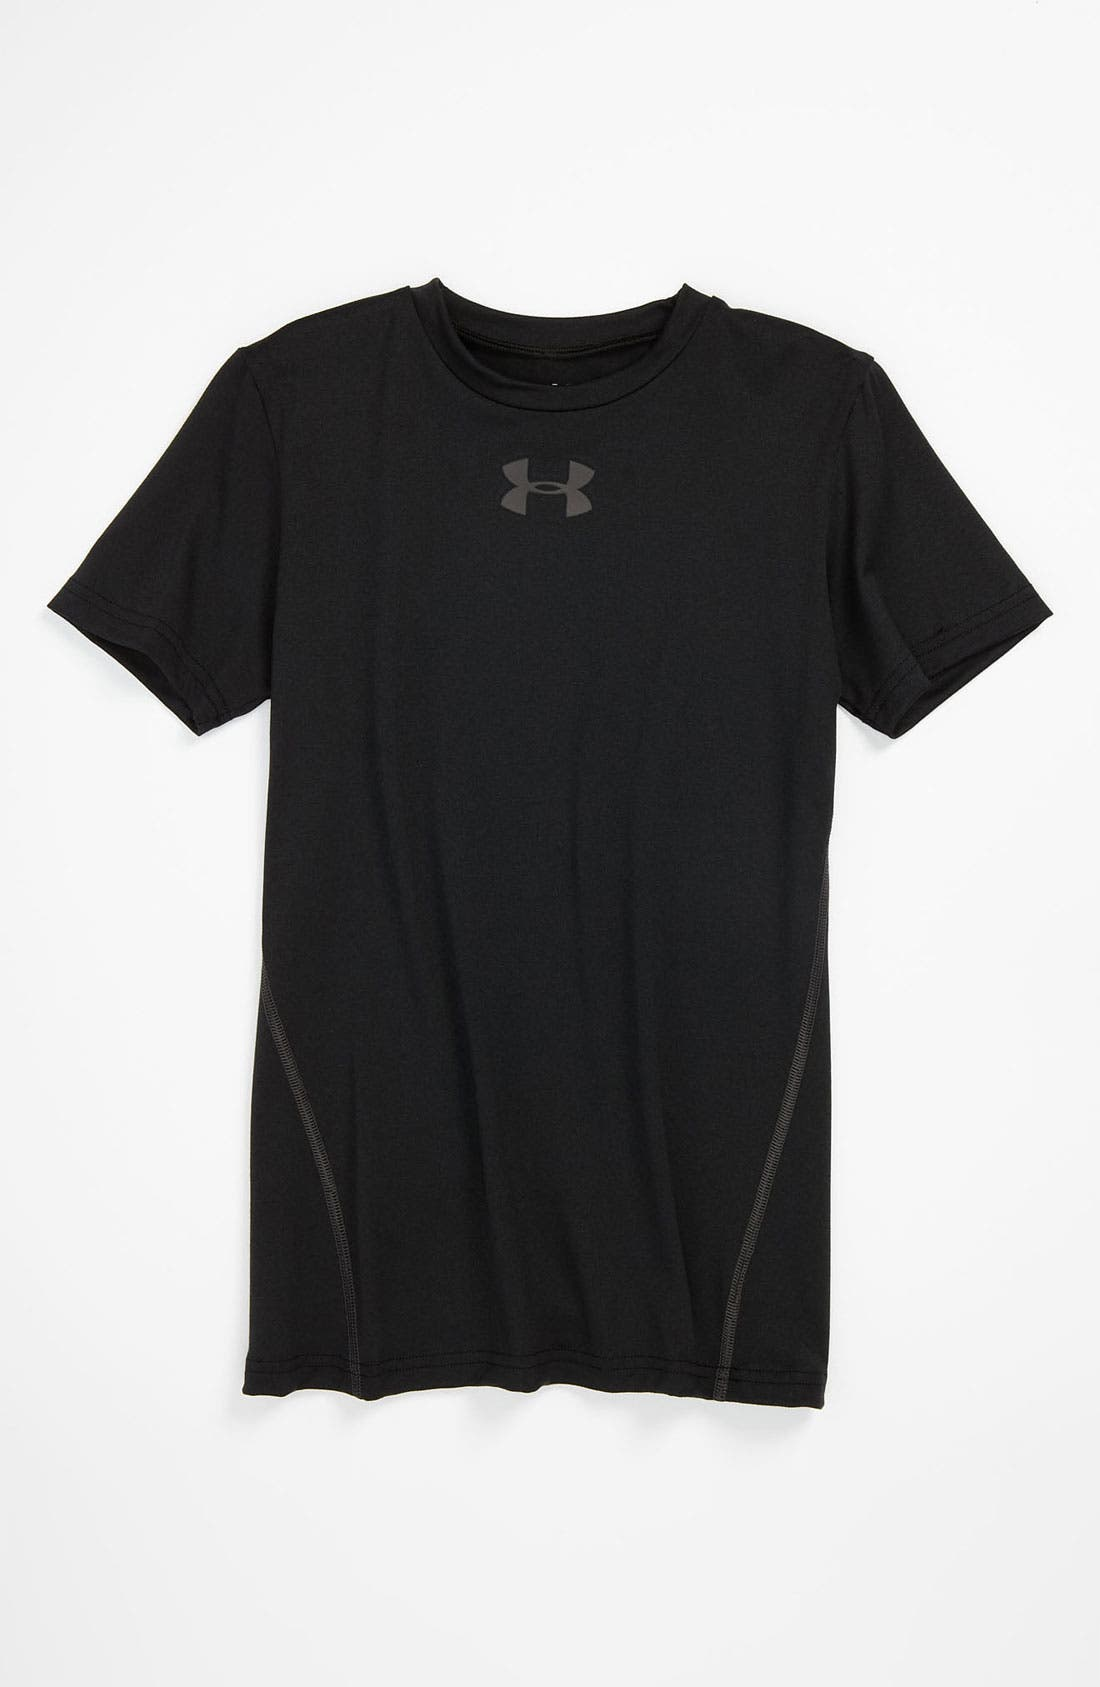 Alternate Image 1 Selected - Under Armour 'Touch' Fitted T-Shirt (Big Boys)